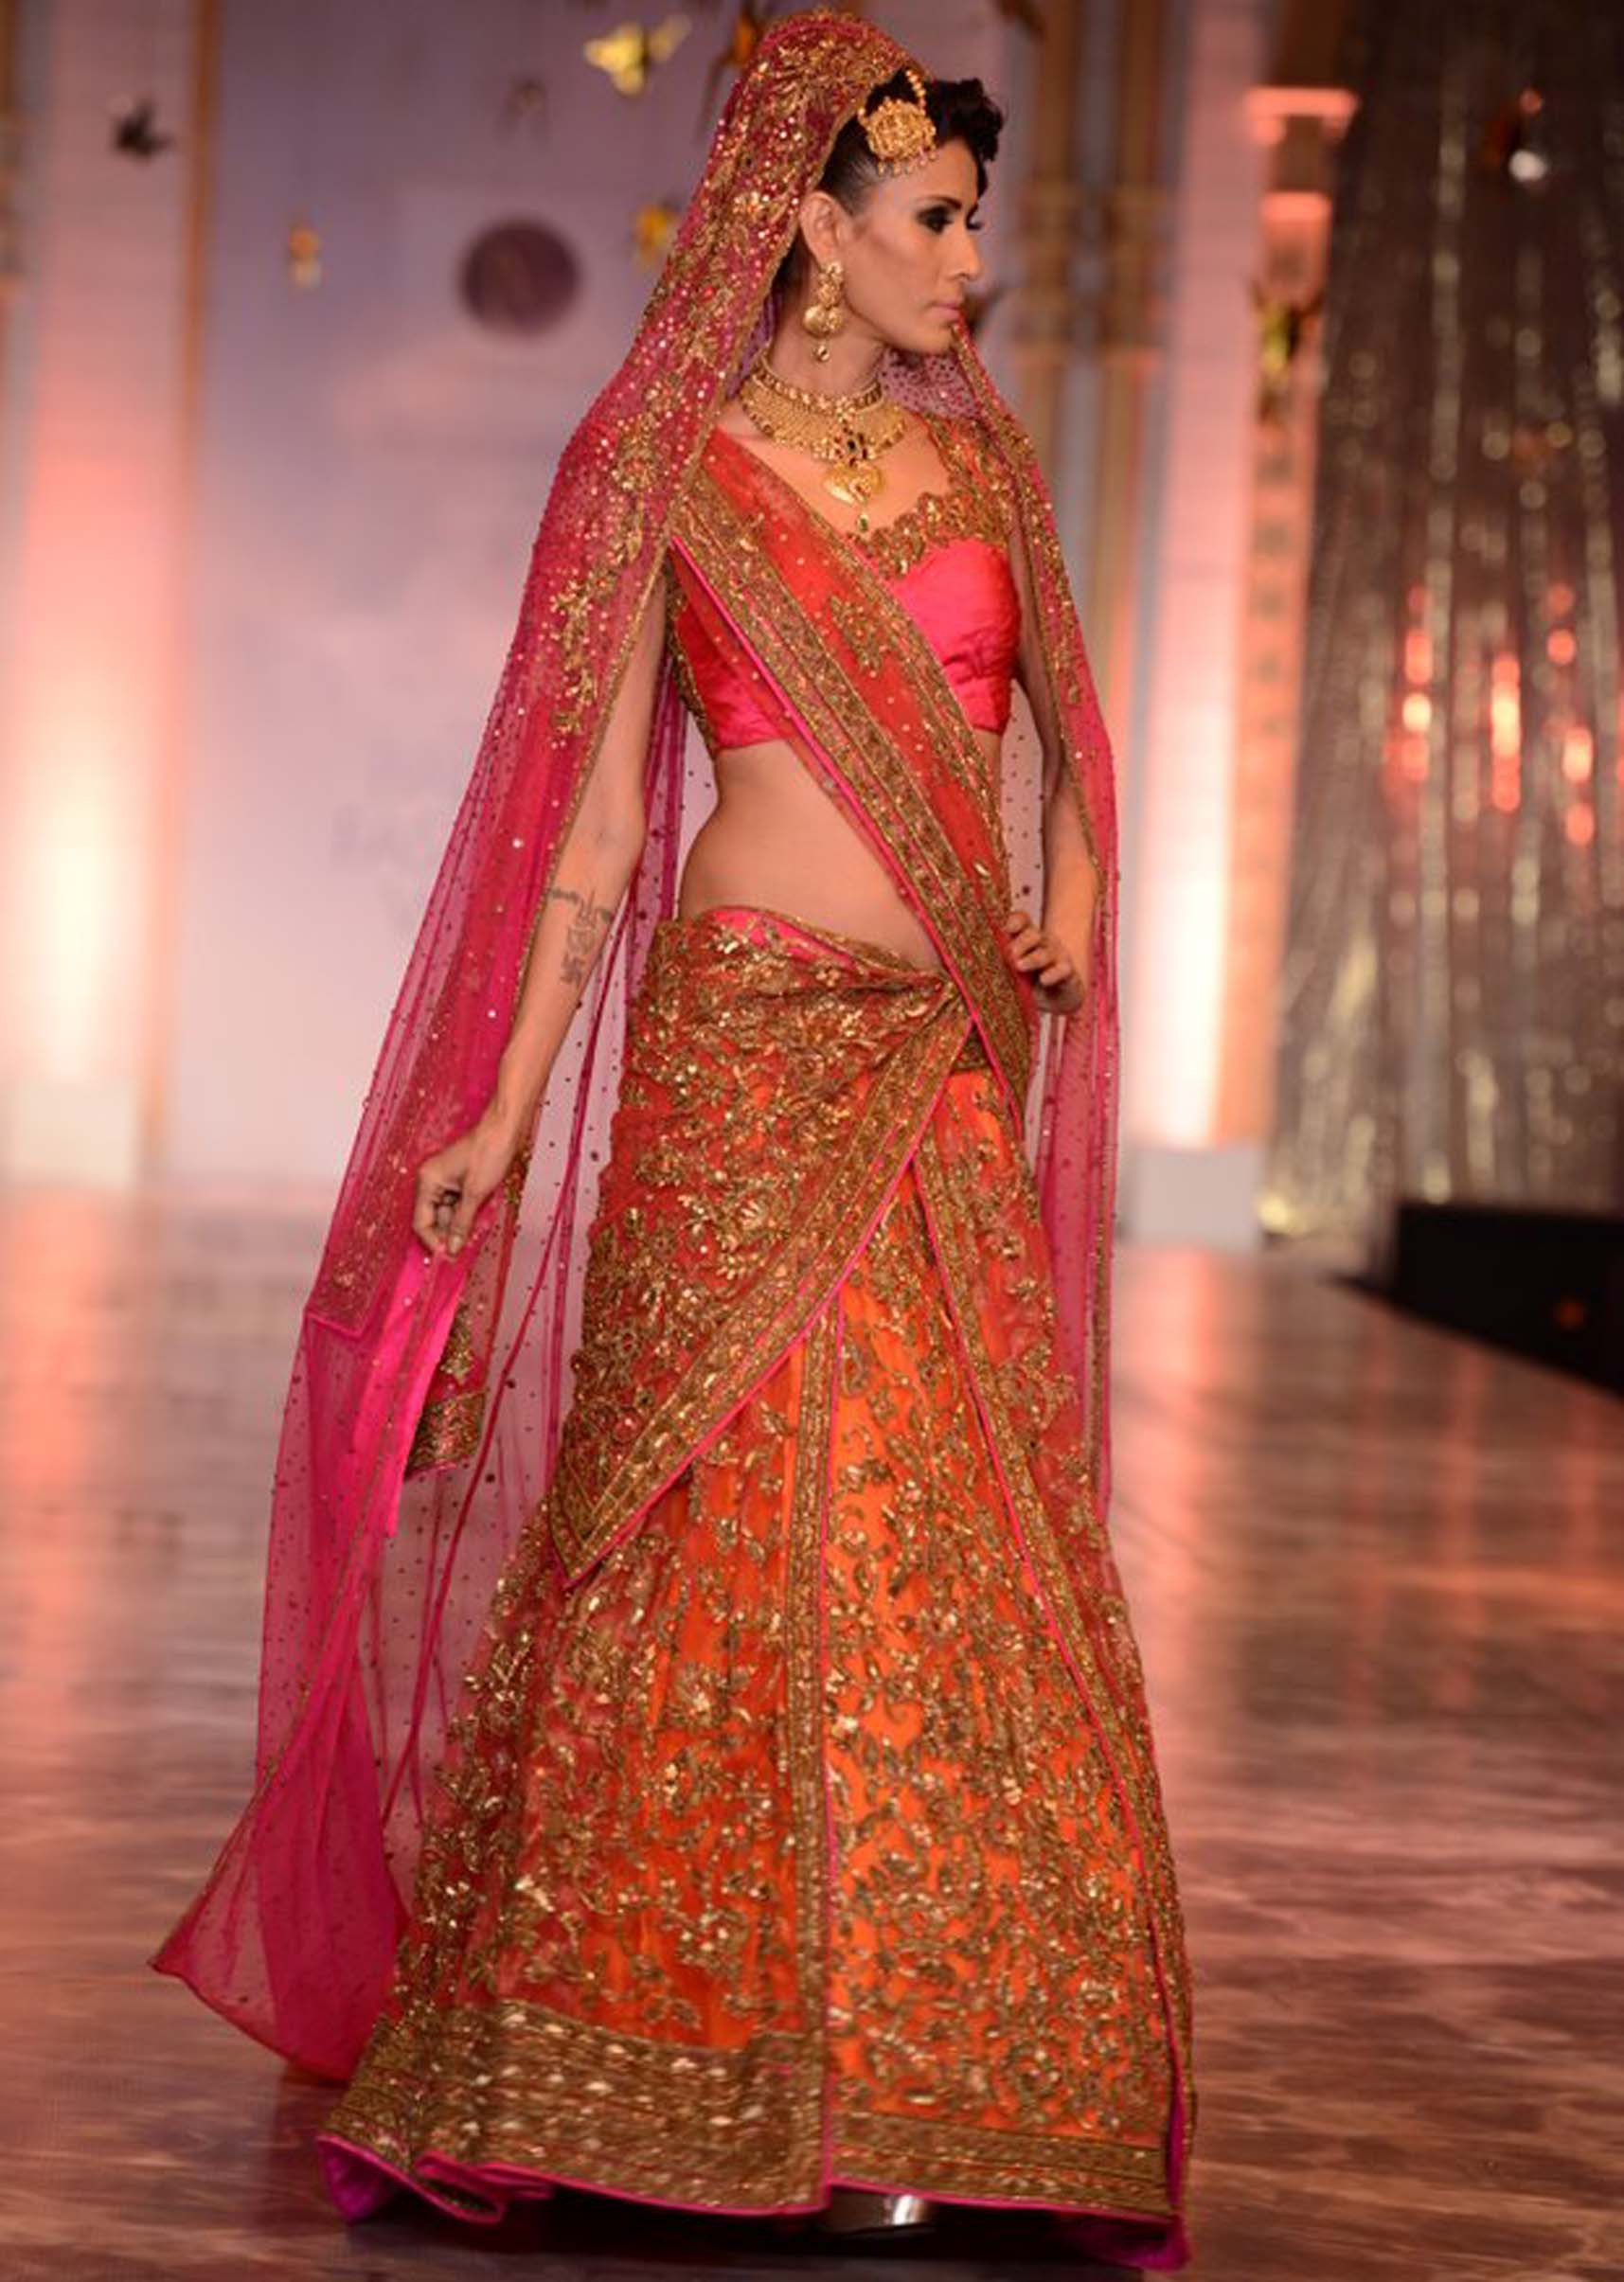 Top 10 Popular & Best Indian Bridal Dress Designers- Hit List